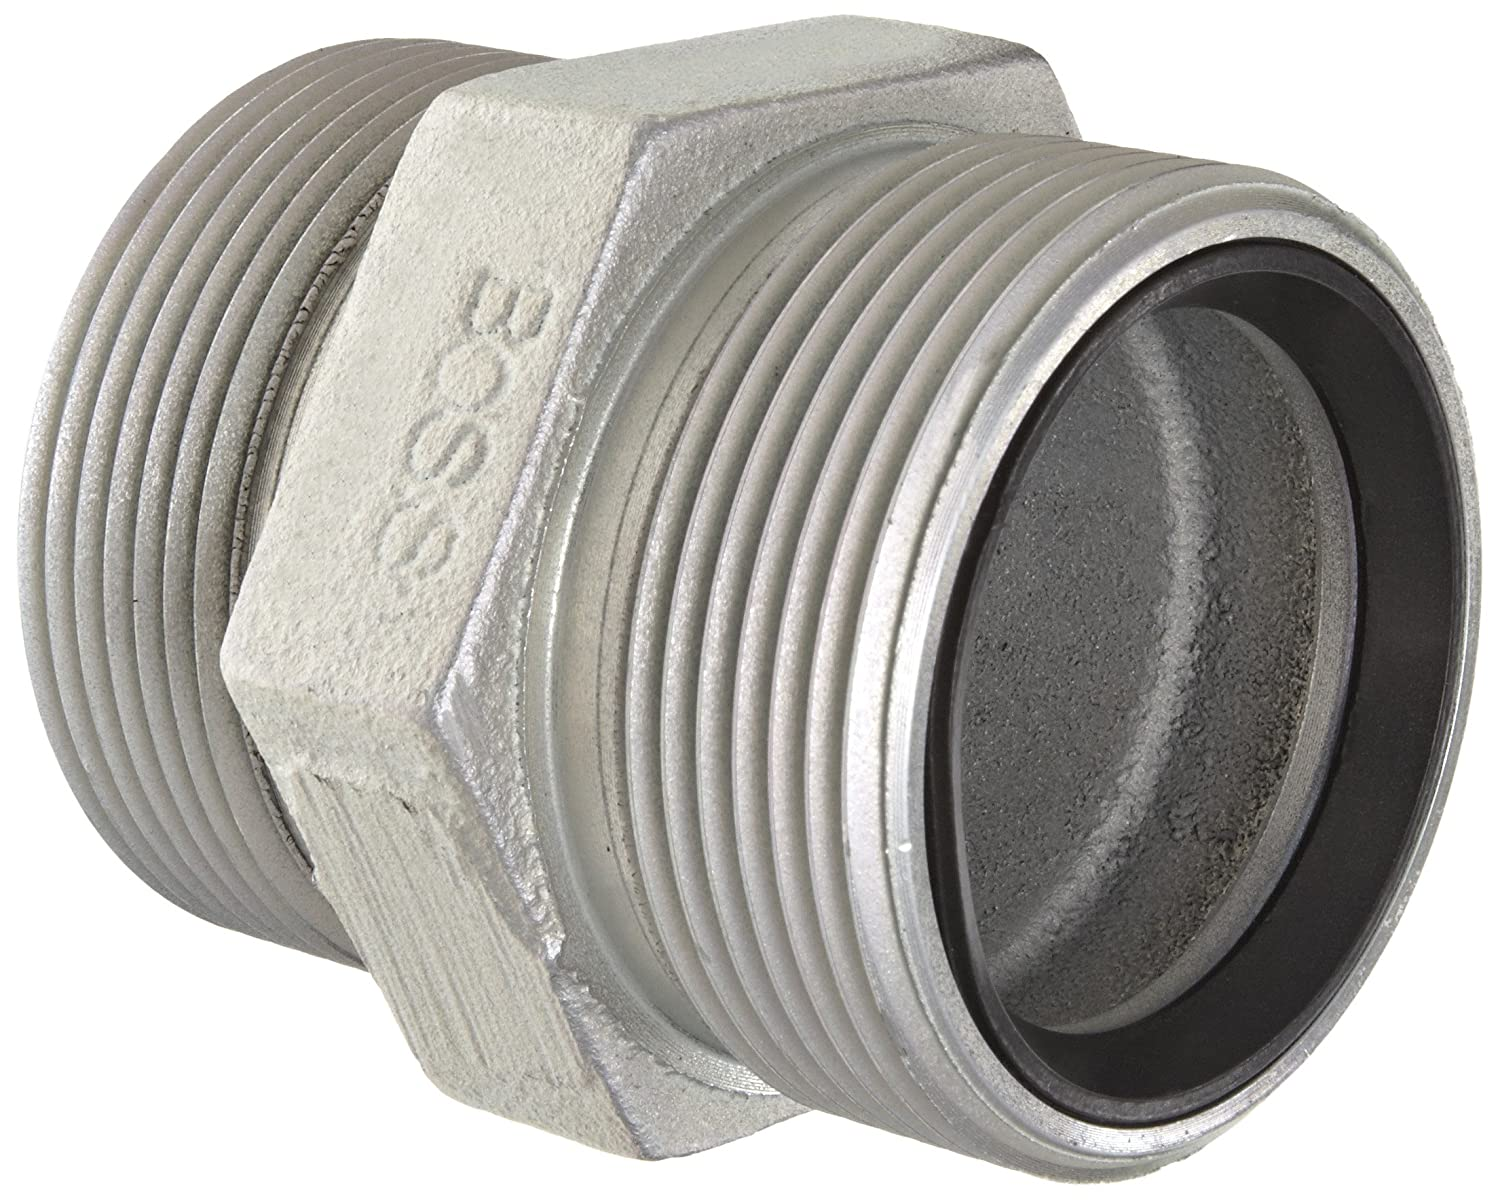 Dixon Valve /& Coupling Boss GB28 Plated Iron Hose Fitting Spud for GJ Boss Ground Joint Seal 2 NPT Female